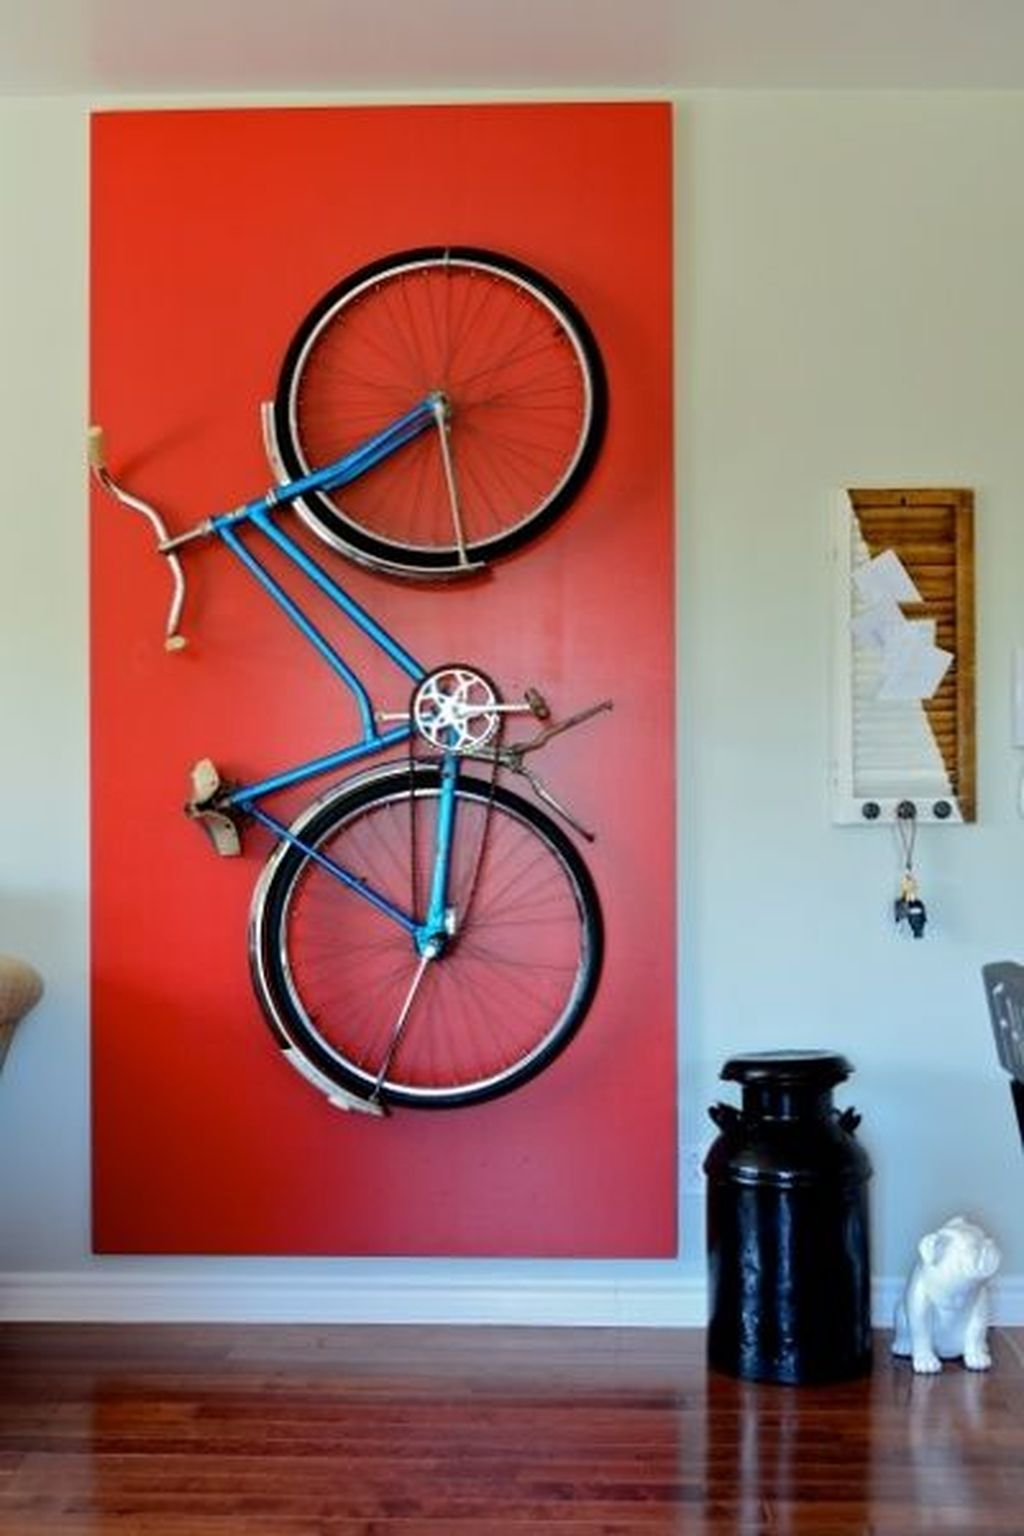 40 adorable hanging bicycle design ideas on the wall to